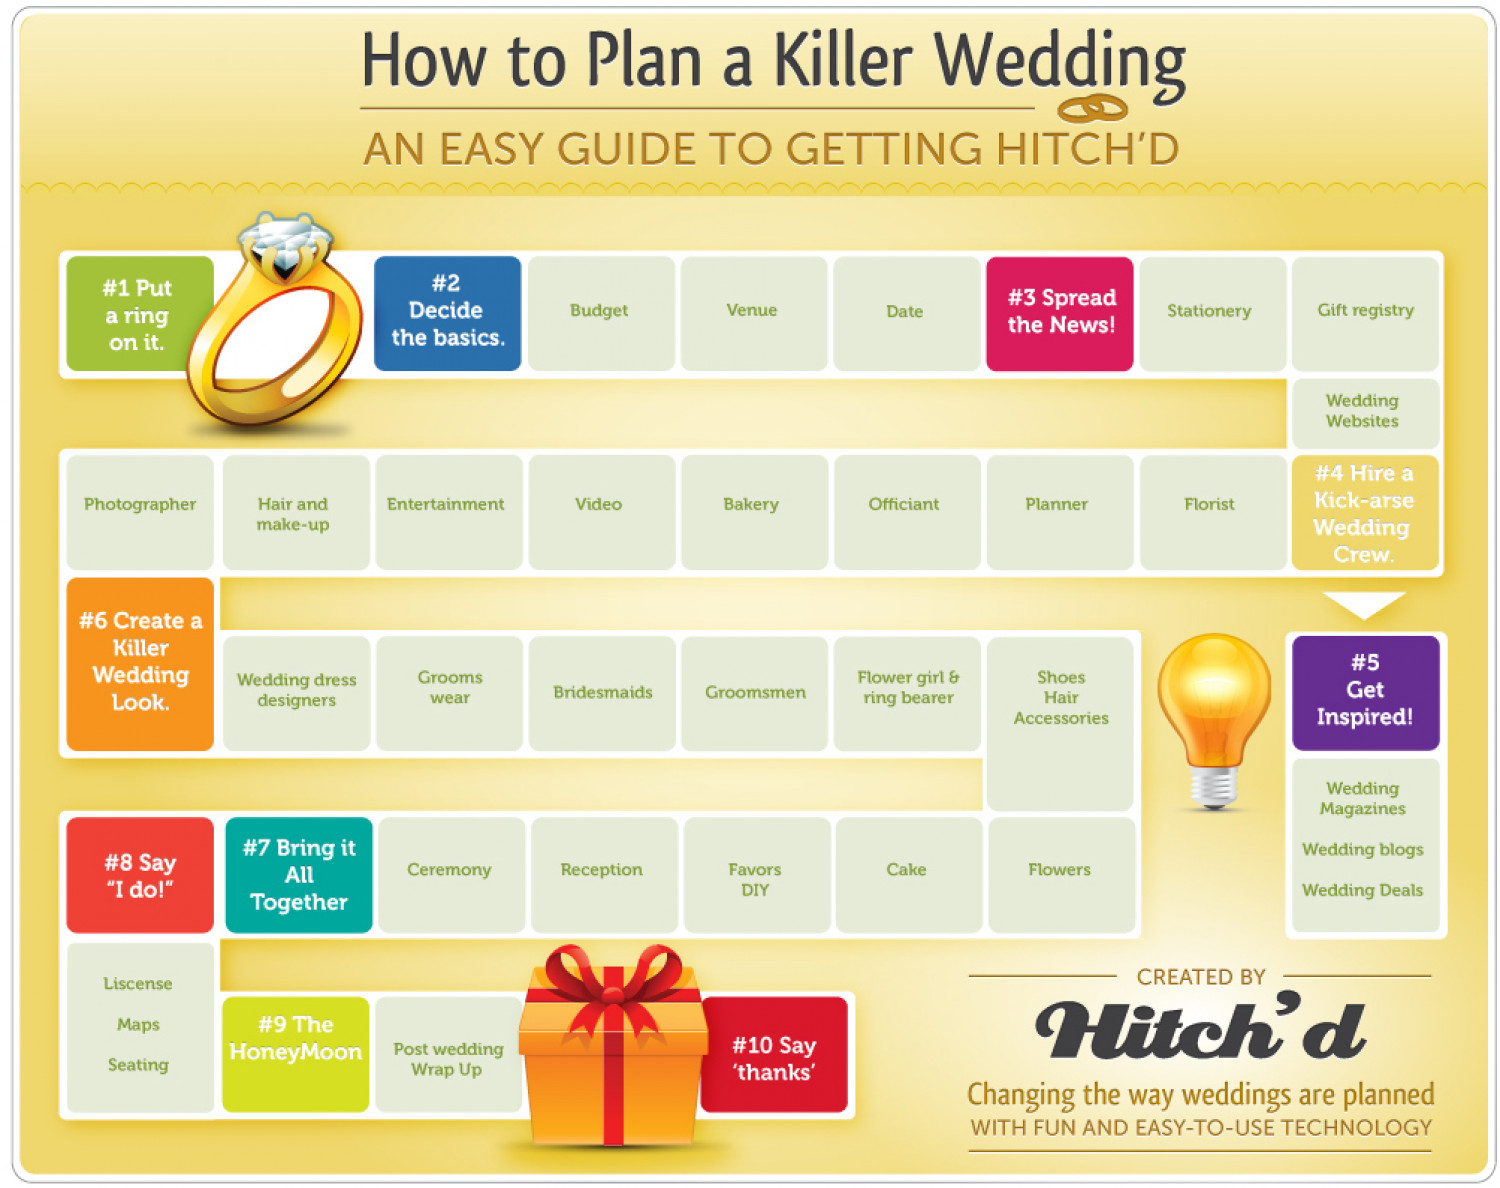 How to Plan a Killer Wedding, An Easy Guide to Getting Hitched! Infographic